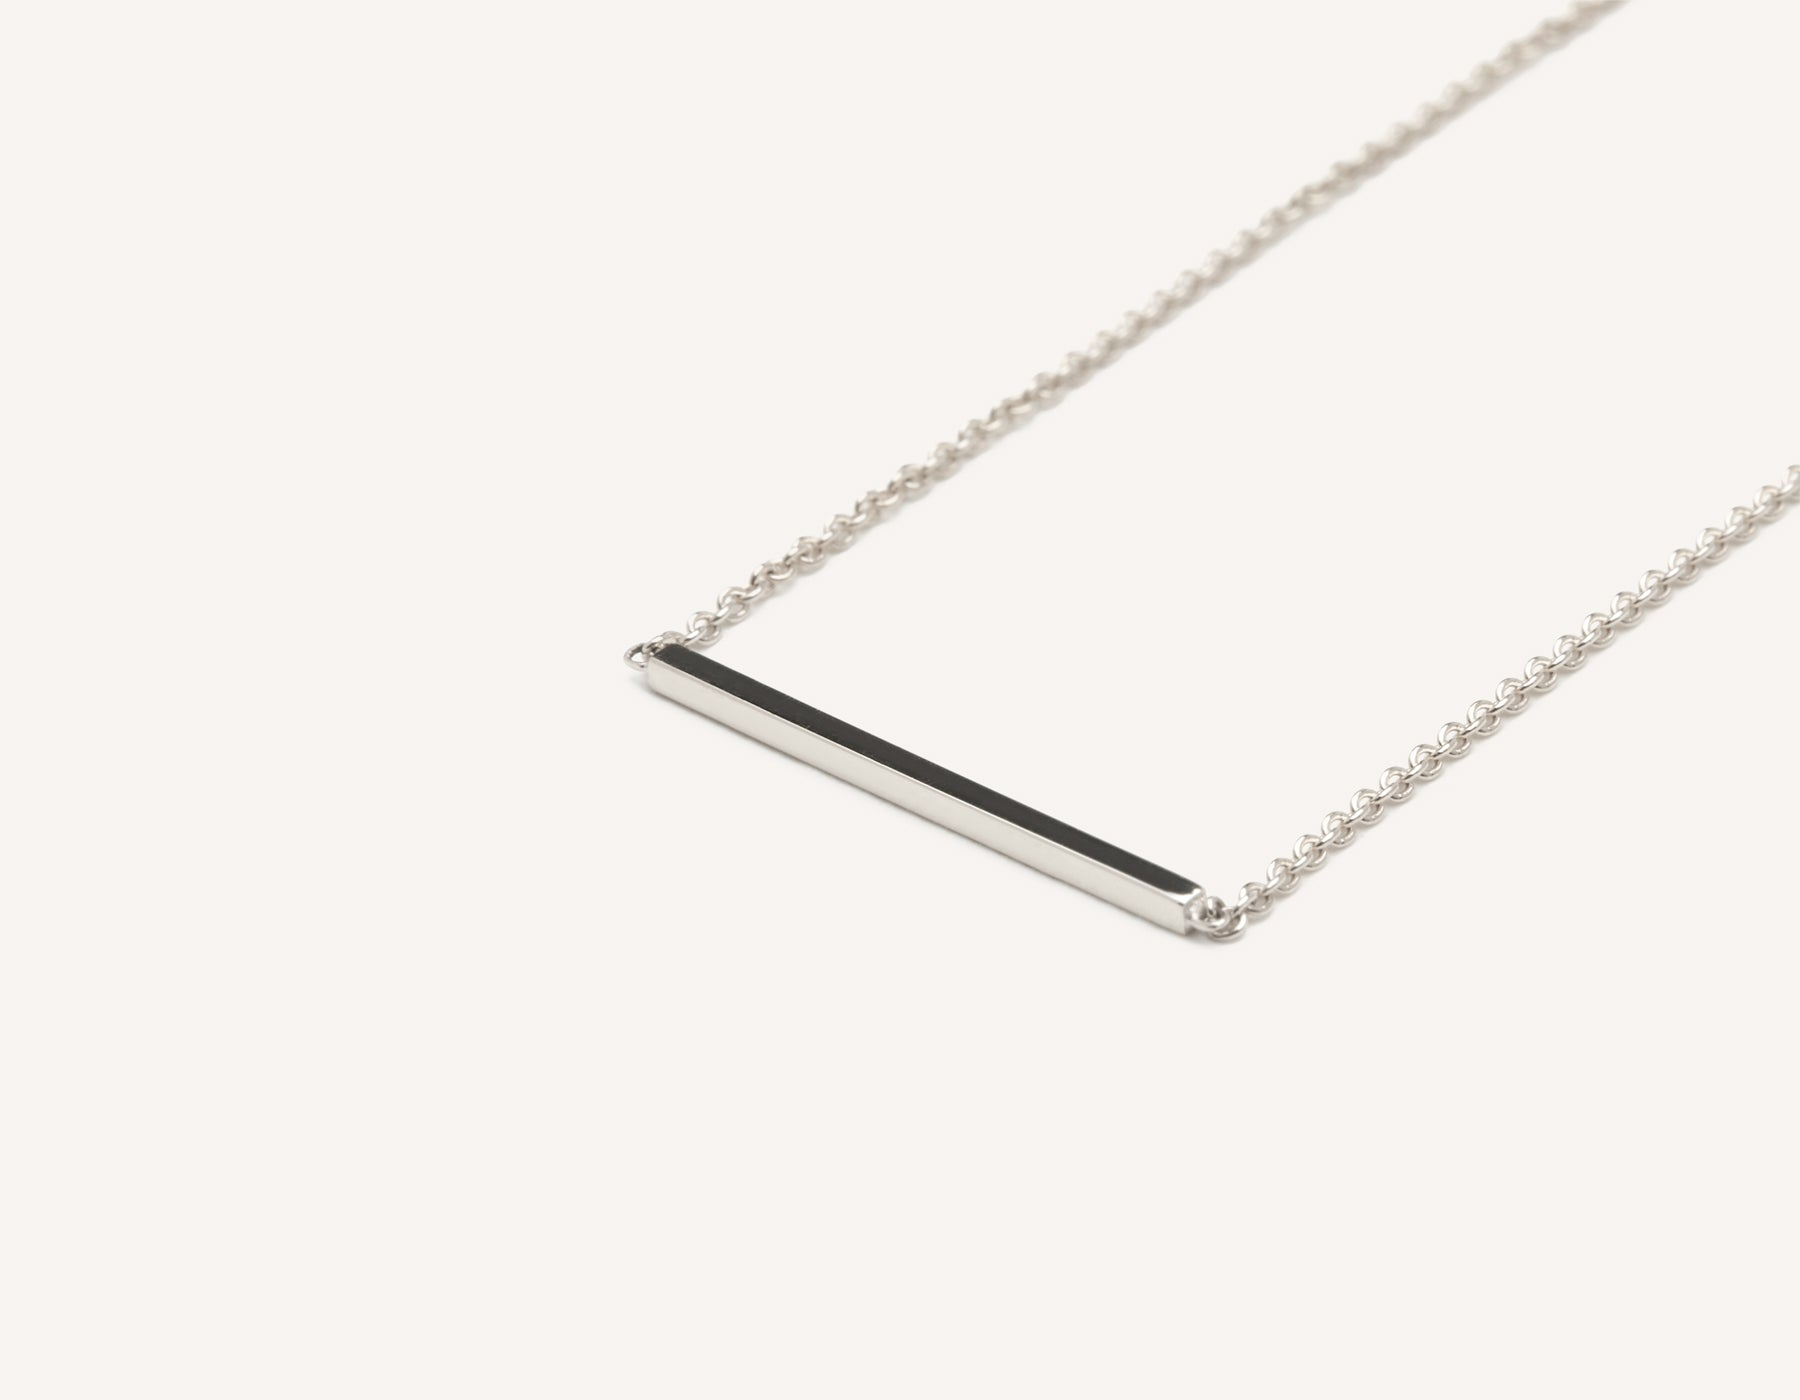 Modern minimalist 14k solid gold Line Necklace dainty chain Vrai and Oro sustainable jewelry, 14K White Gold